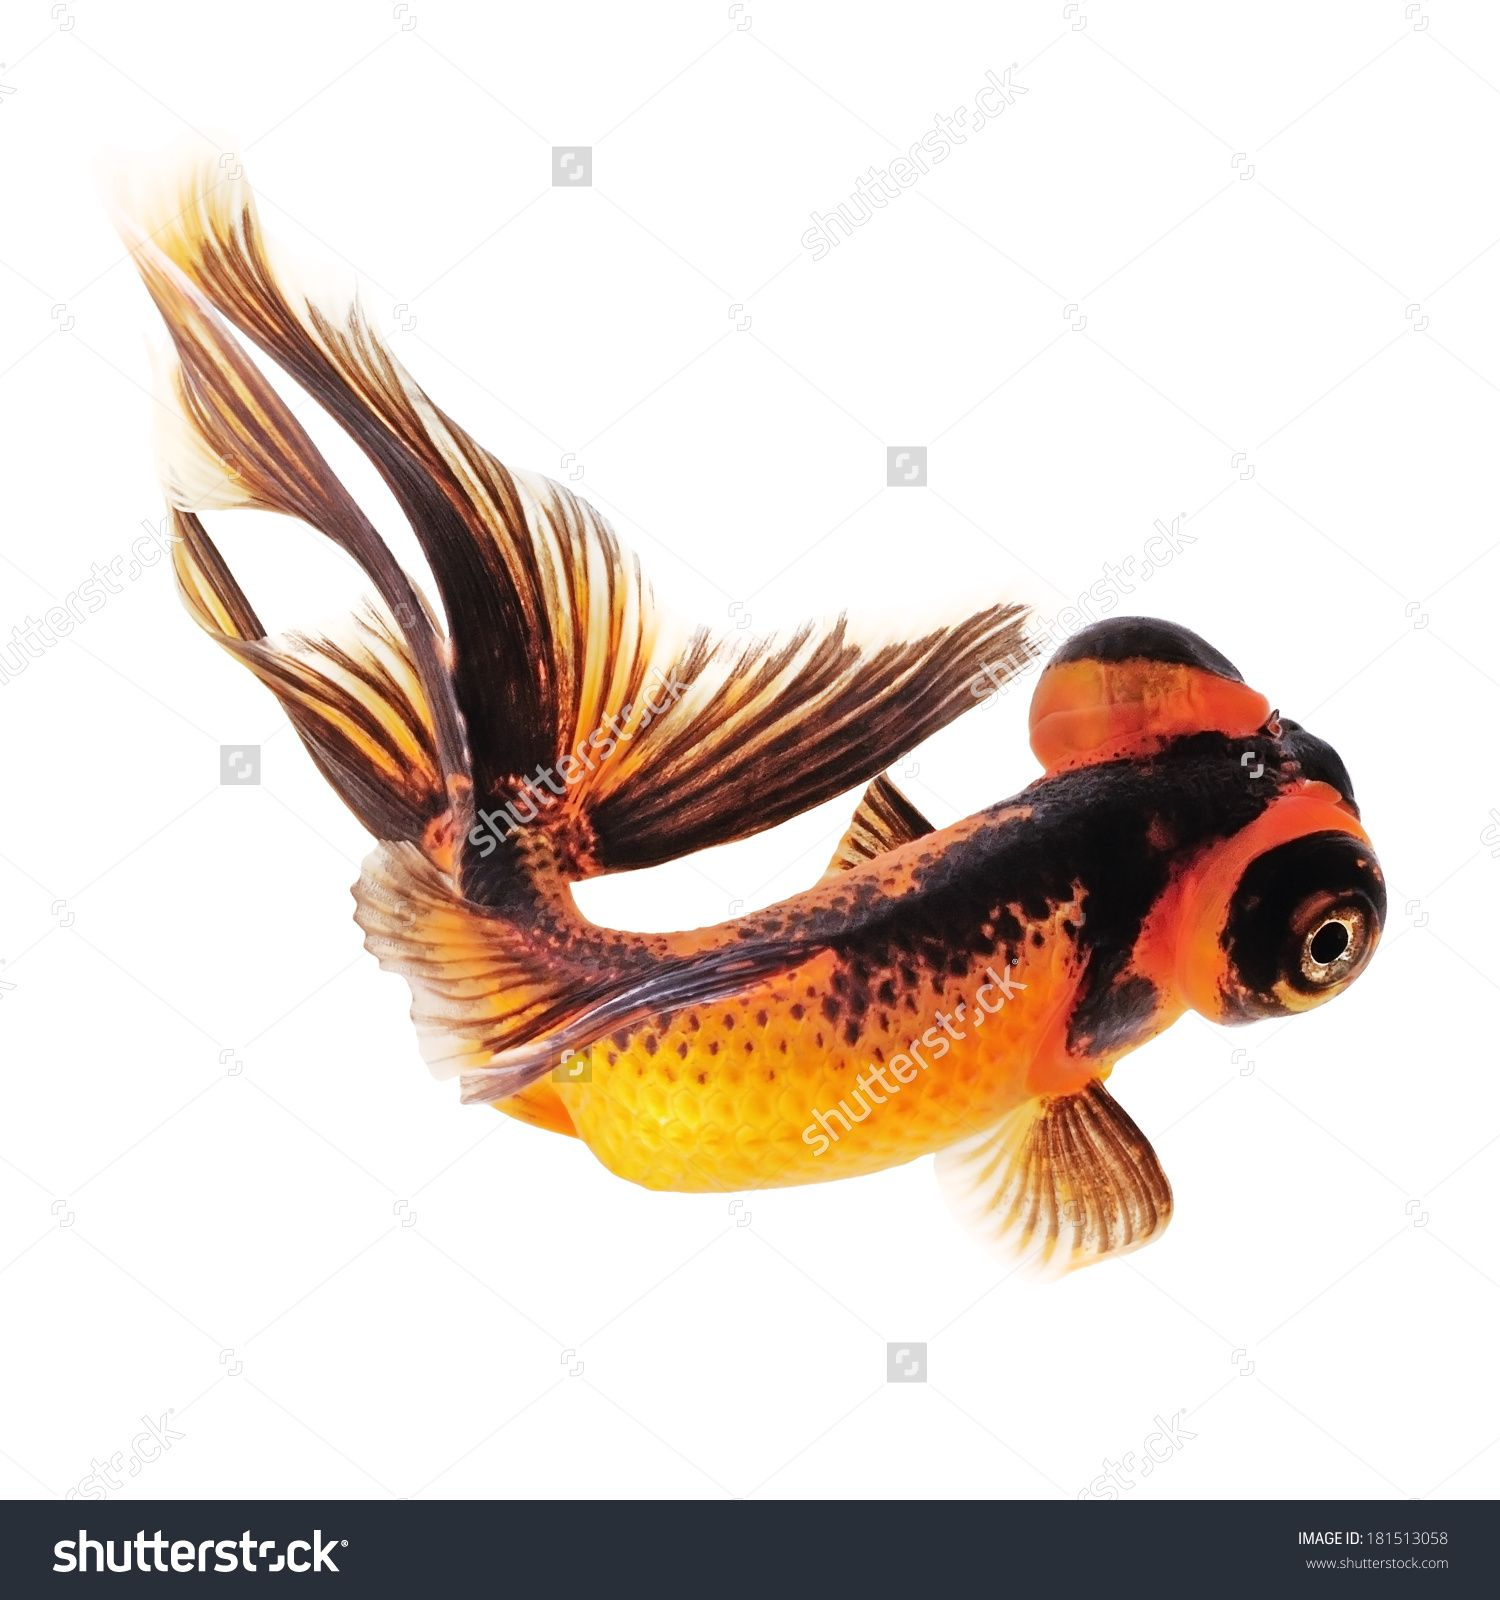 stock photo telescope eye goldfish with a black tail isolated on